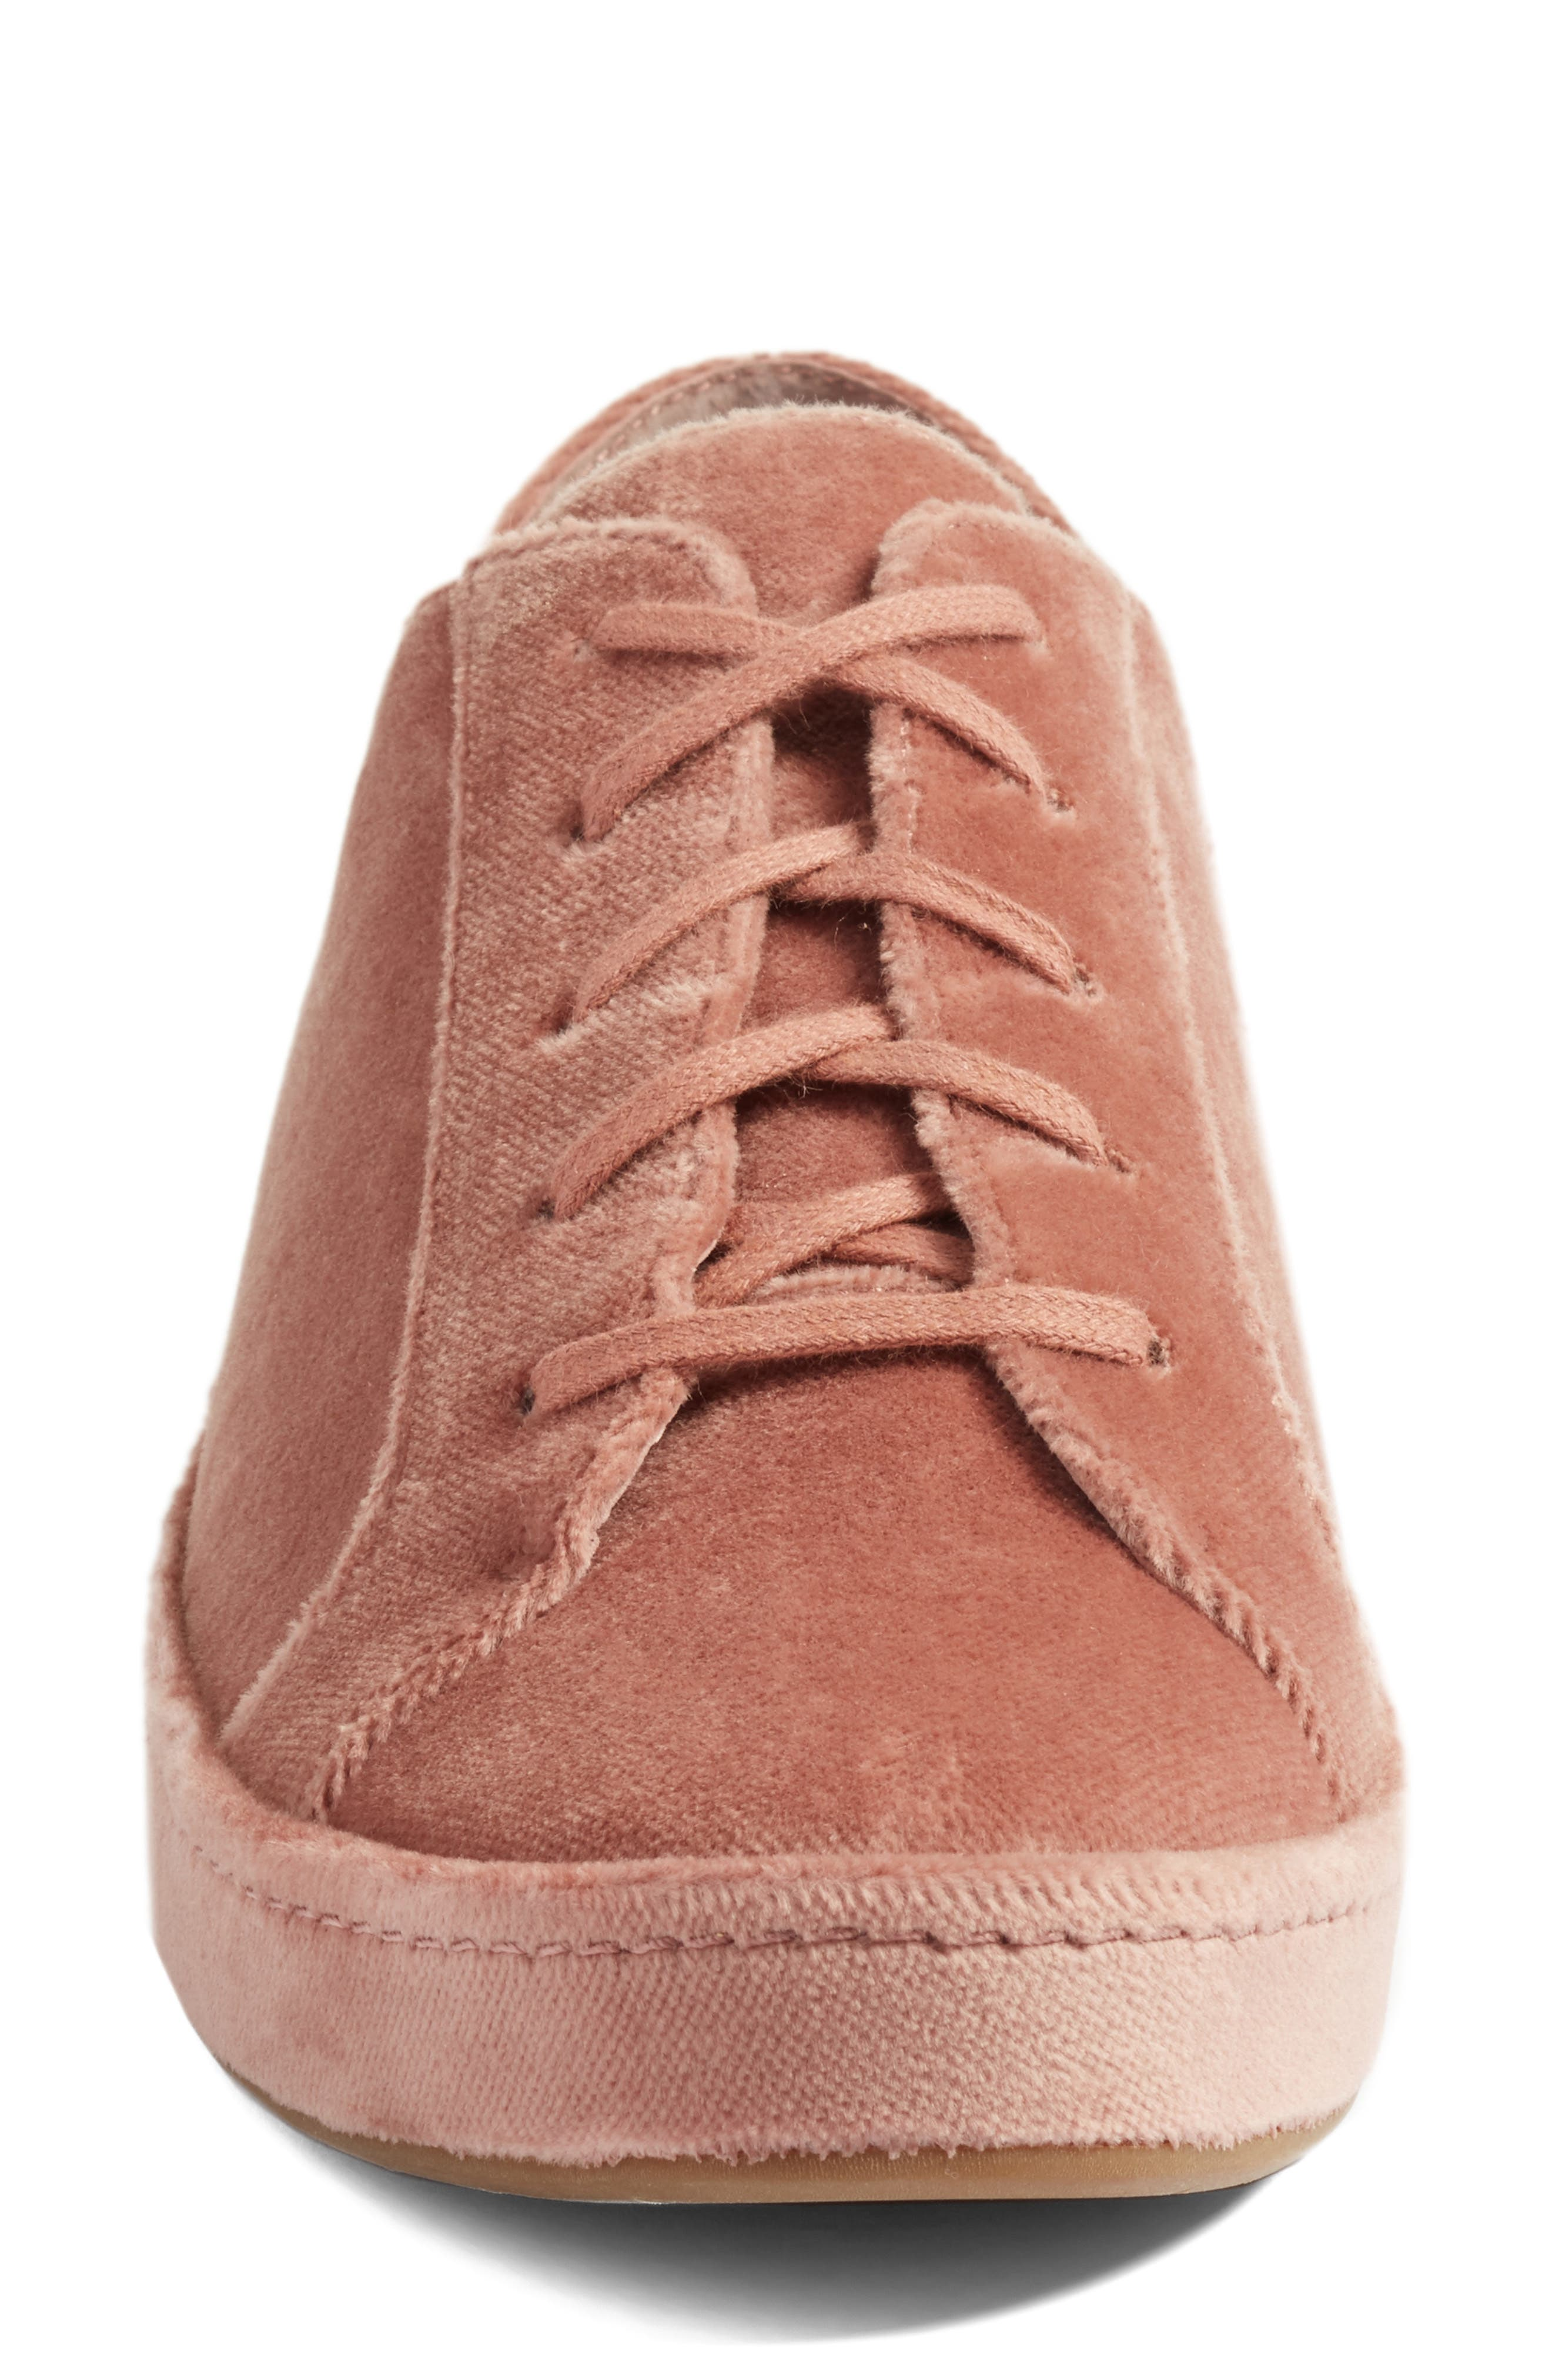 Daryl Low Top Sneaker,                             Alternate thumbnail 8, color,